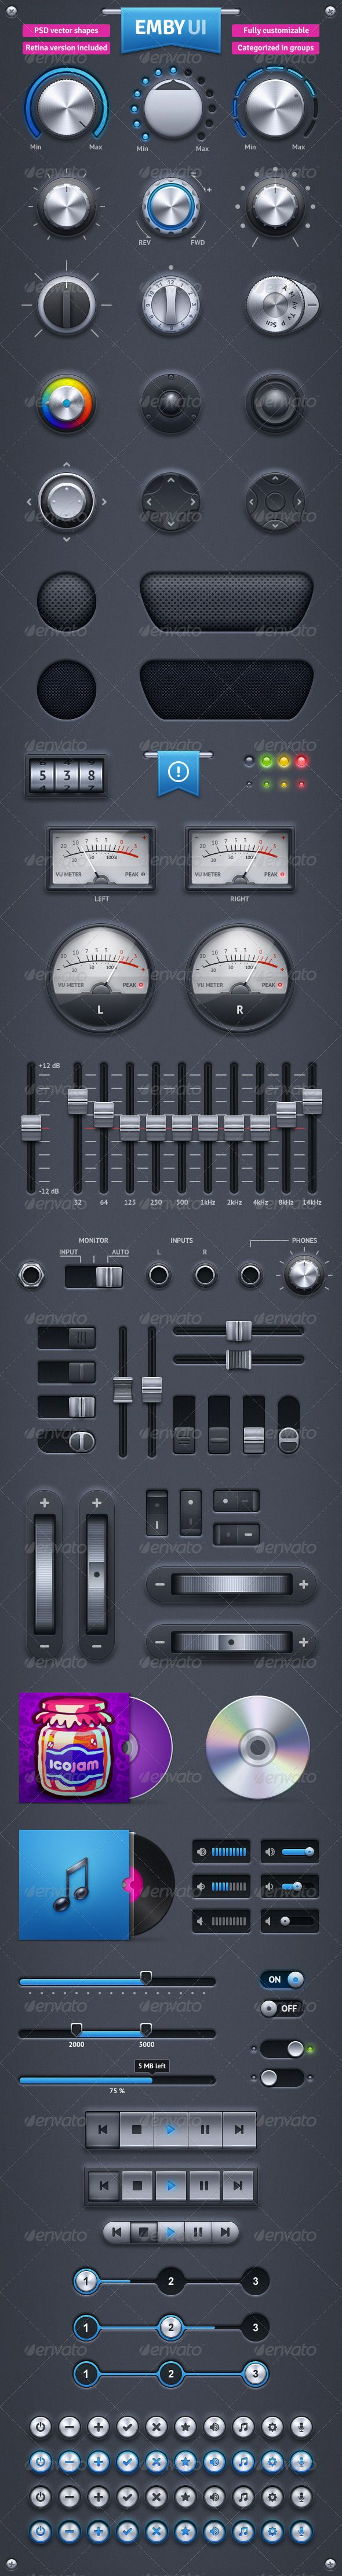 Emby UI #GraphicRiver EMBY UI contains knobs, counter, volume meters, speakers, light bulbs, color selector, gamepads, ribbon, scroll wheels, equalizer, switches, tumblers, audio inputs, cd, vinyl, sound bars, steps meter, buttons, sliders, progress bars, player controls, range selector. - Vector shapes layered - 2 PSD files (normal and retina) - Each element layered and categorized in groups Created: 3May13 GraphicsFilesIncluded: PhotoshopPSD HighResolution: Yes Layered: Yes...